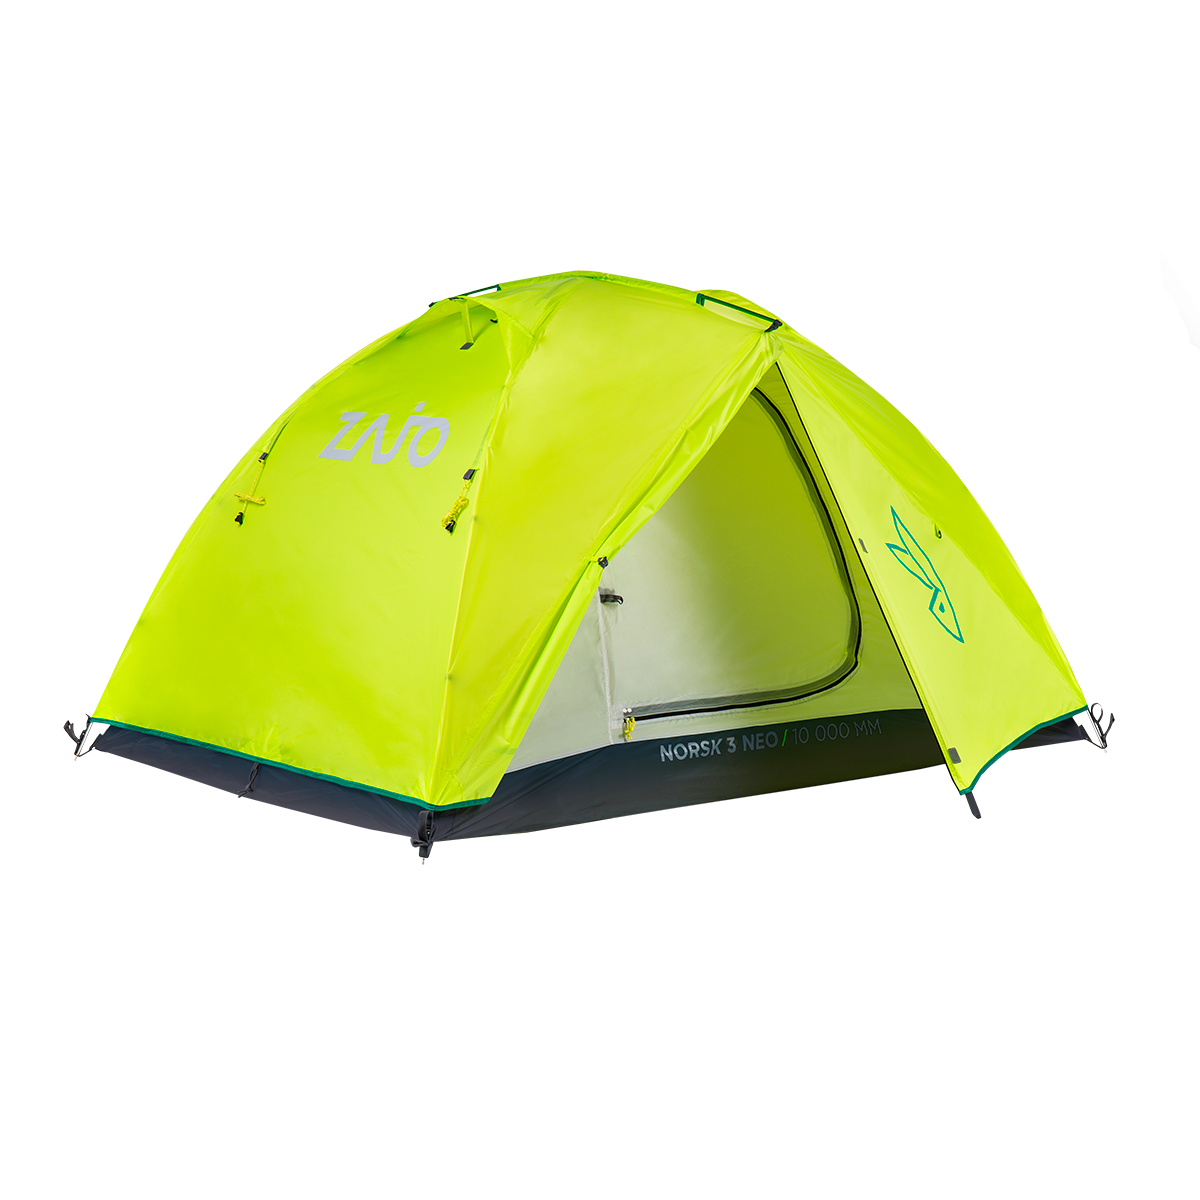 Norsk 3 Neo Tent 1